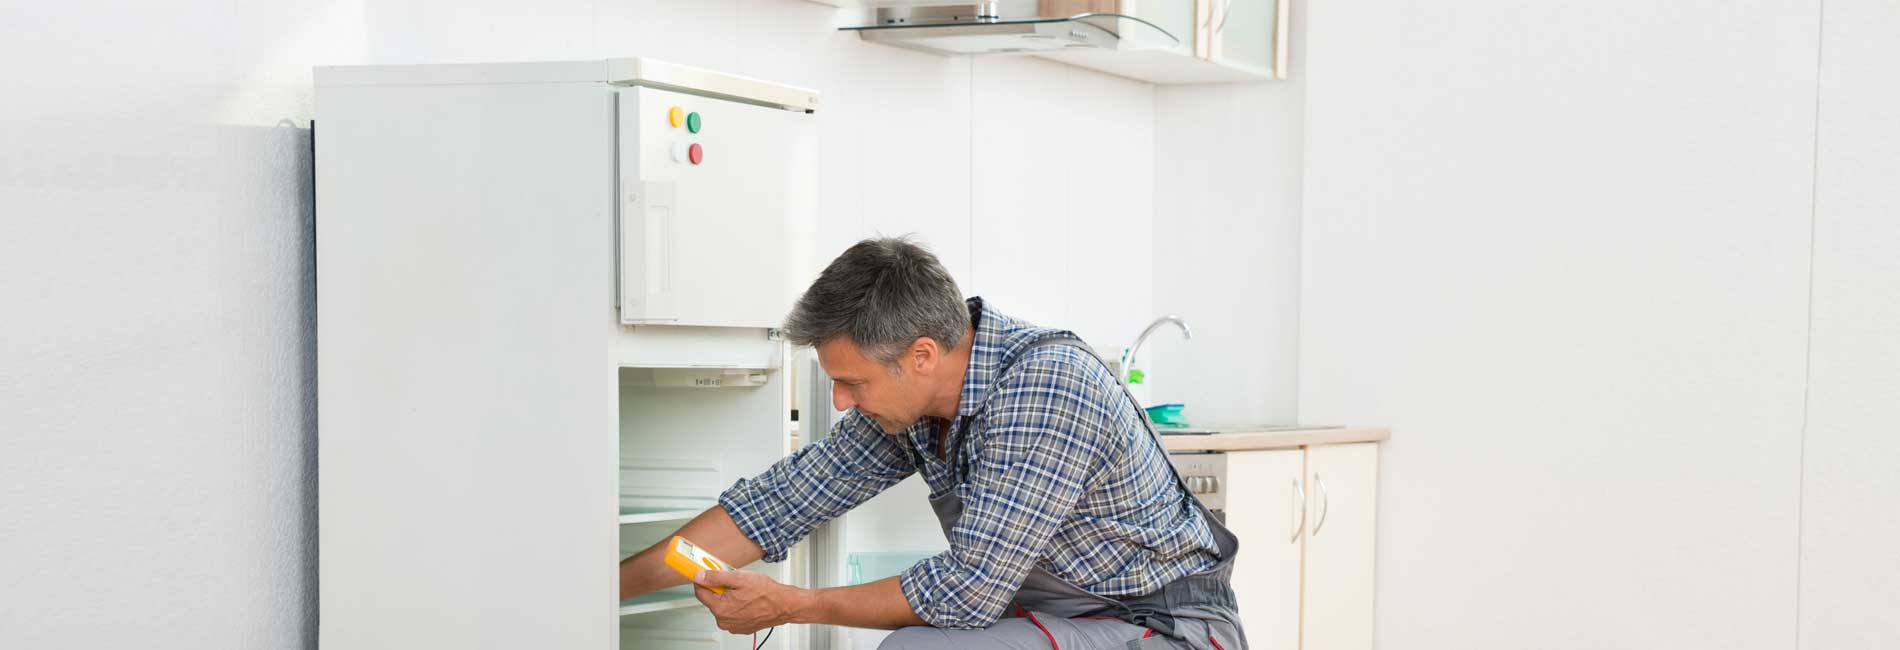 Fridge Repair in Vallalar Nagar